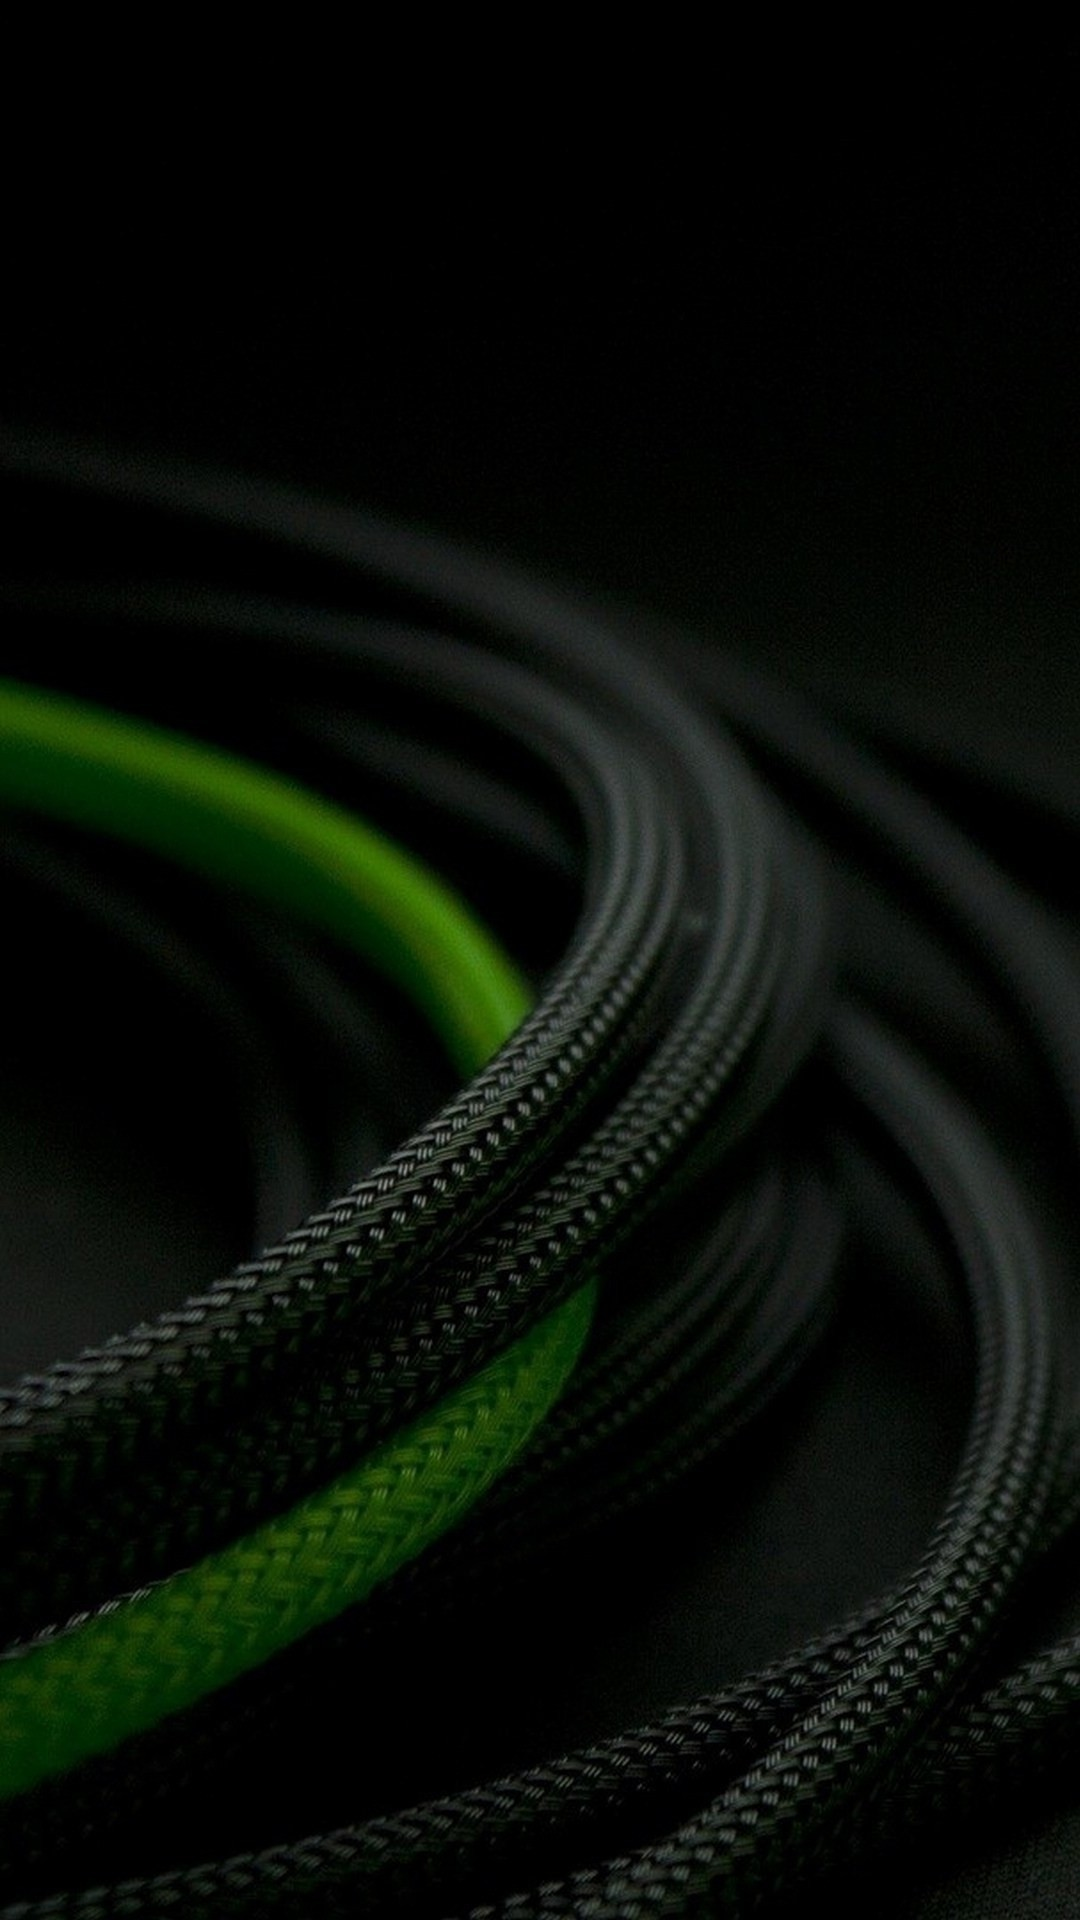 Black and Green Rope 3D iPhone 6 iPhone 6 Plus Wallpaper 1080x1920